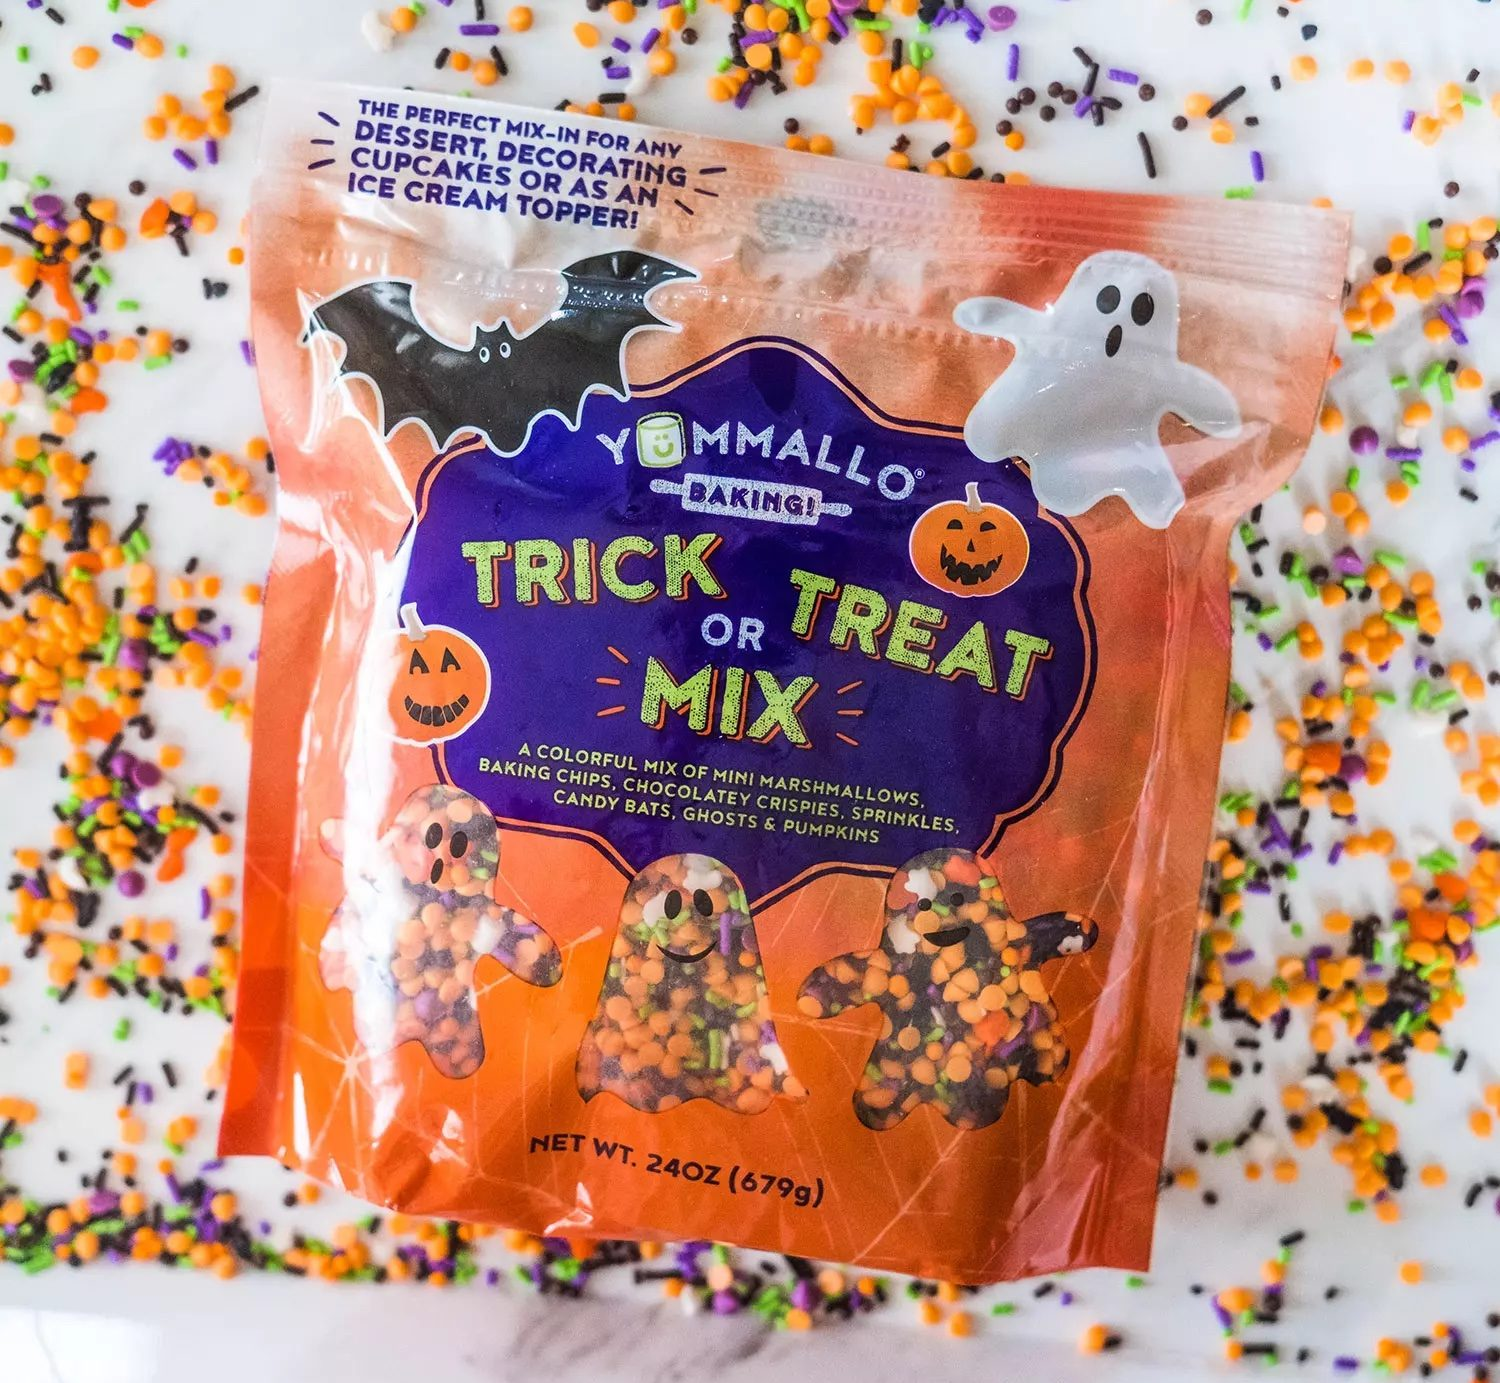 yummalo Trick or Treat Mix in bag on top of sprinkles